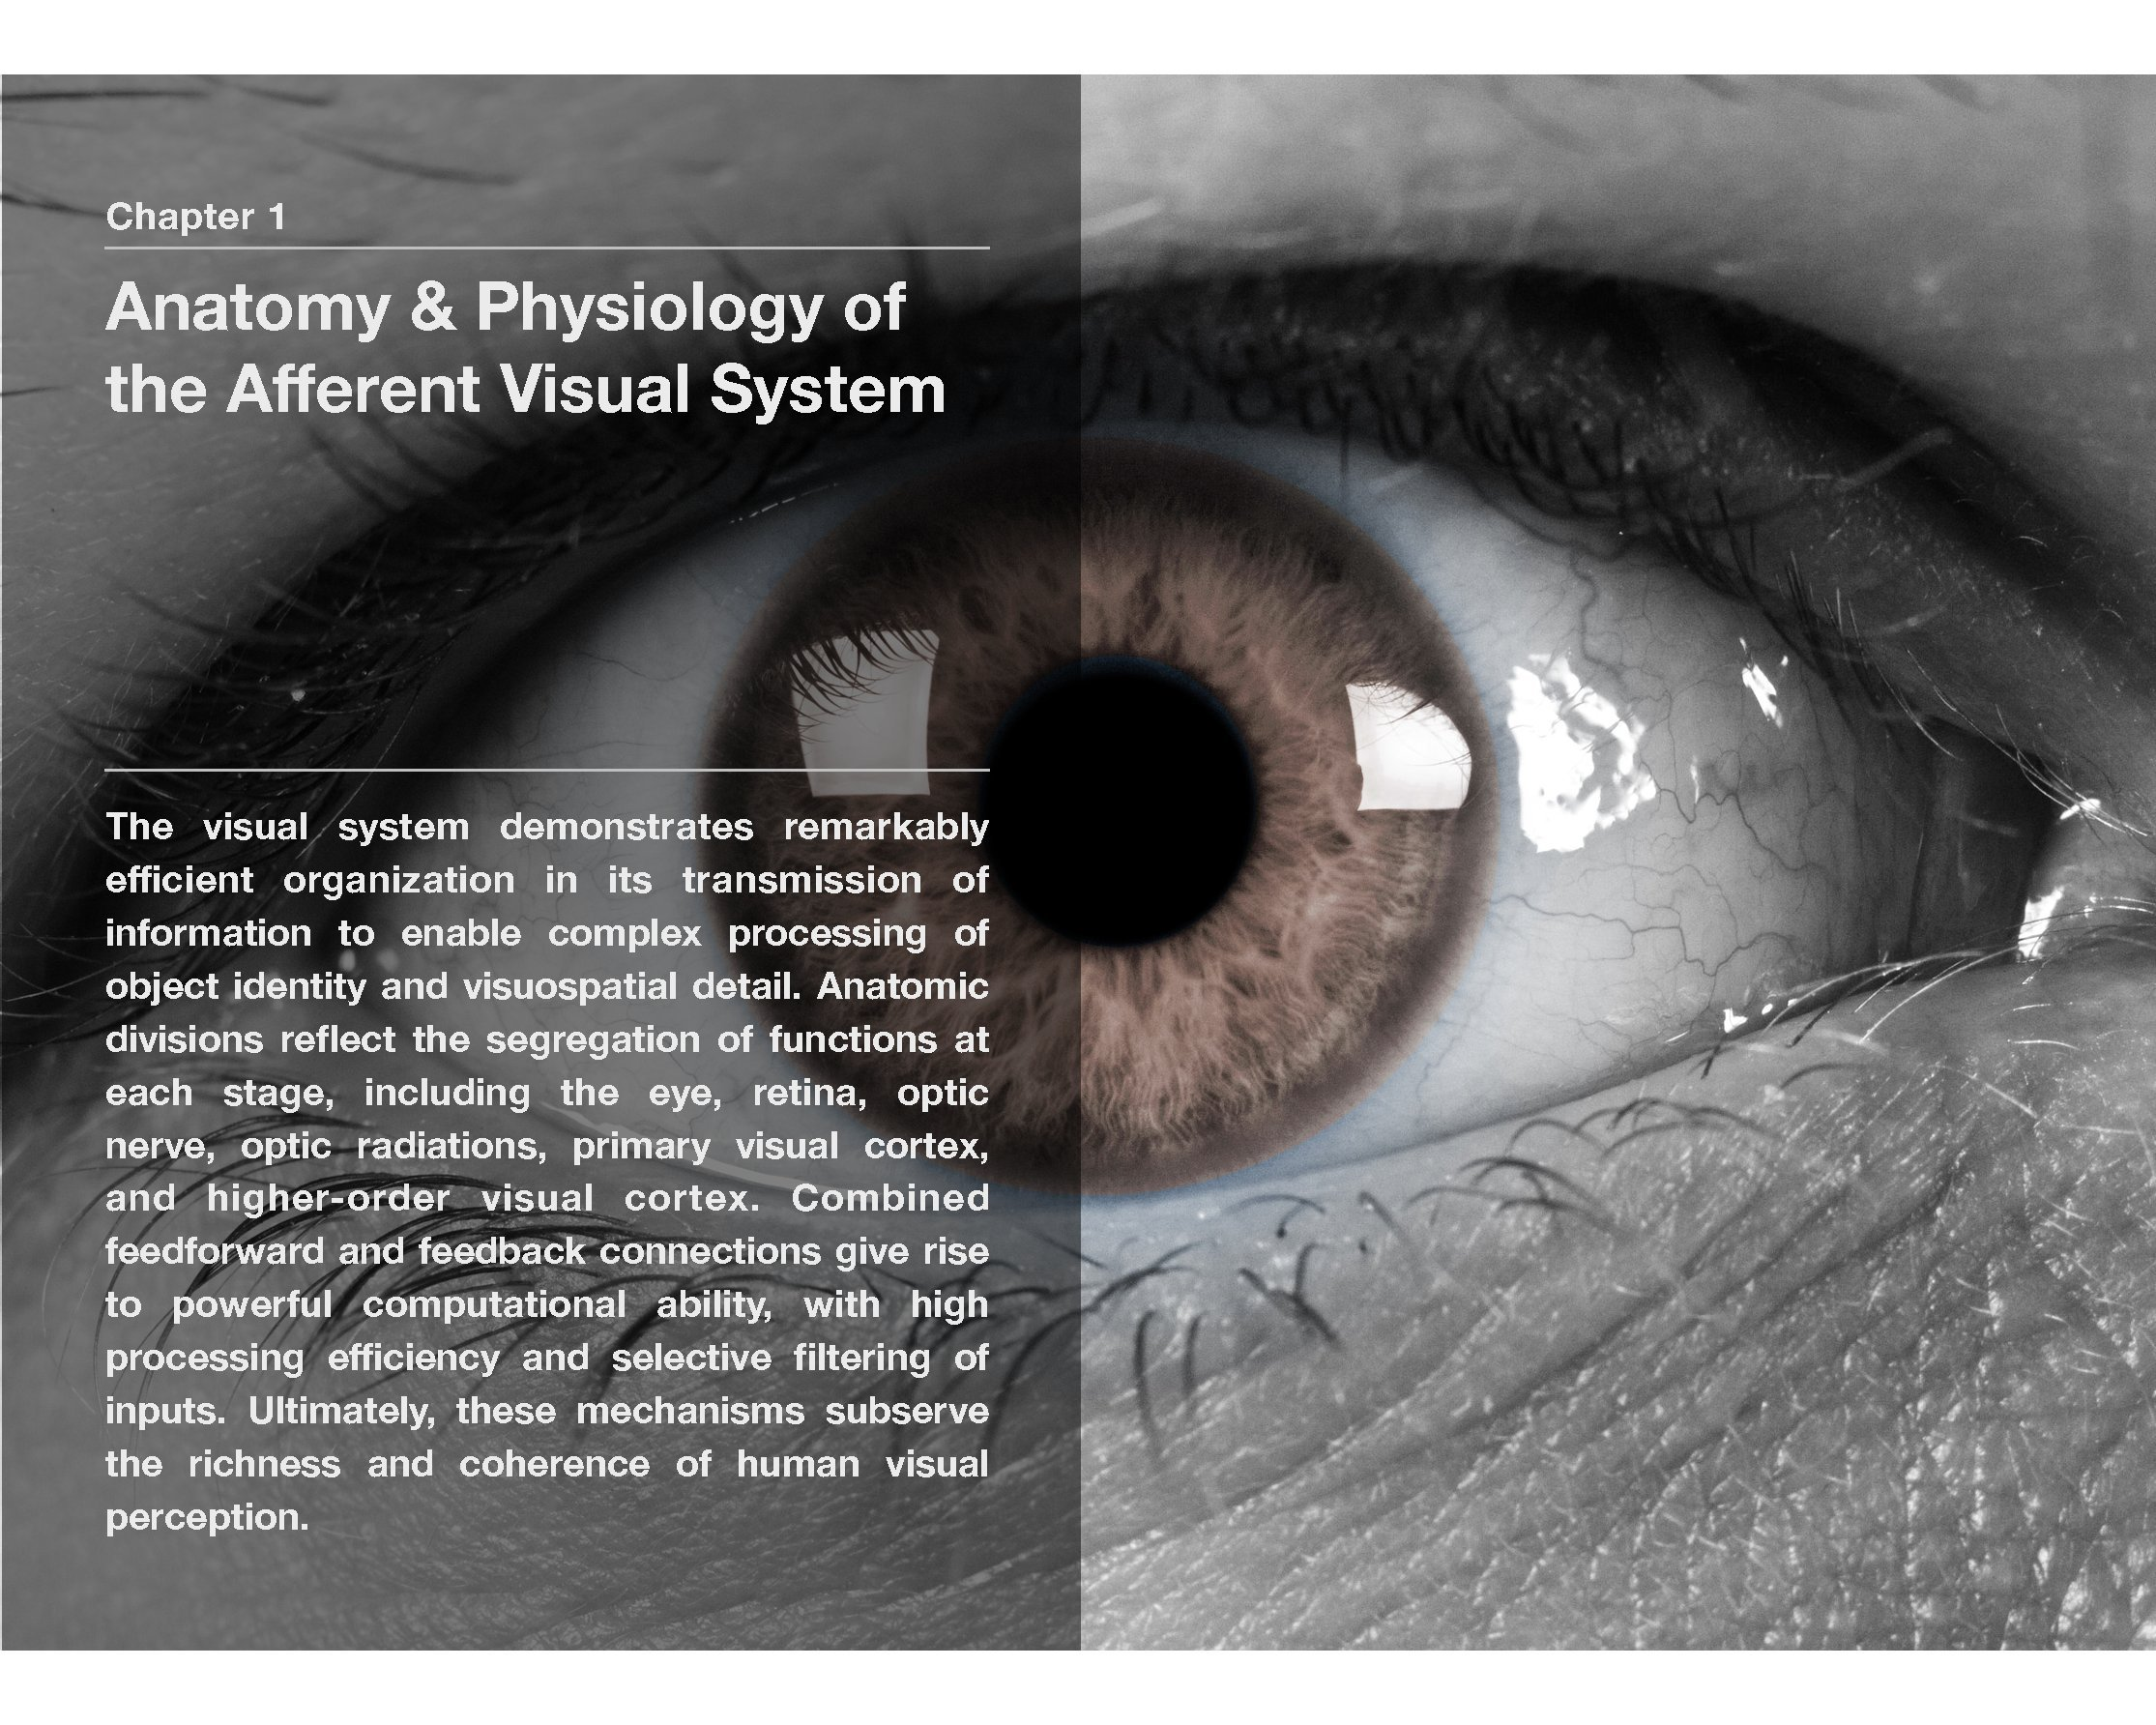 Modern Neuro-Ophthalmology: Anatomy & Physiology of the Human Visual ...